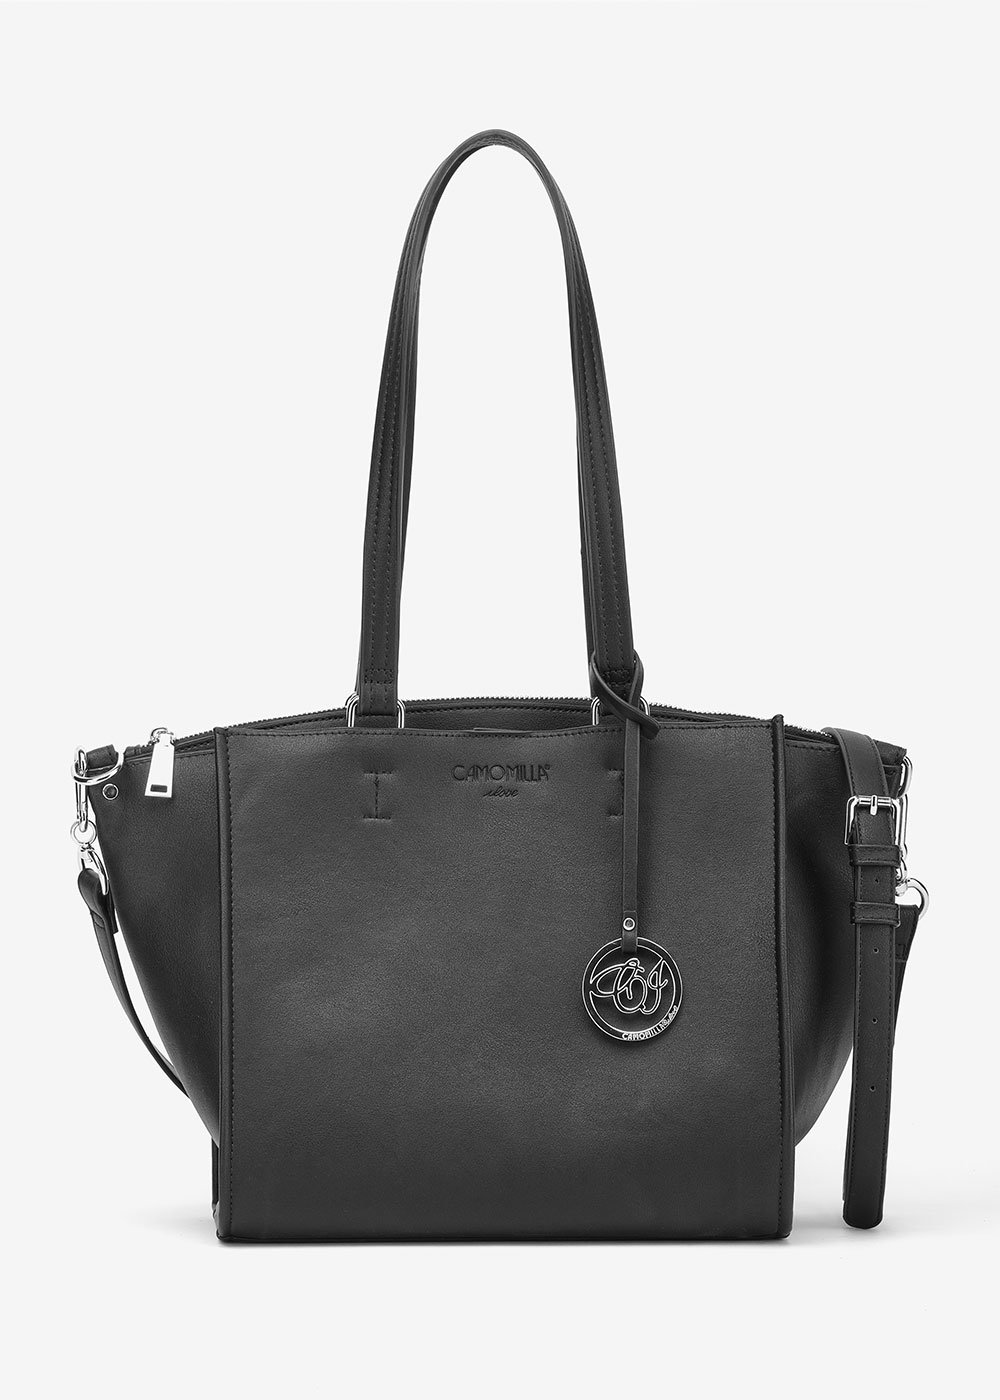 Shopping bag Baloo manici lunghi - Black - Donna